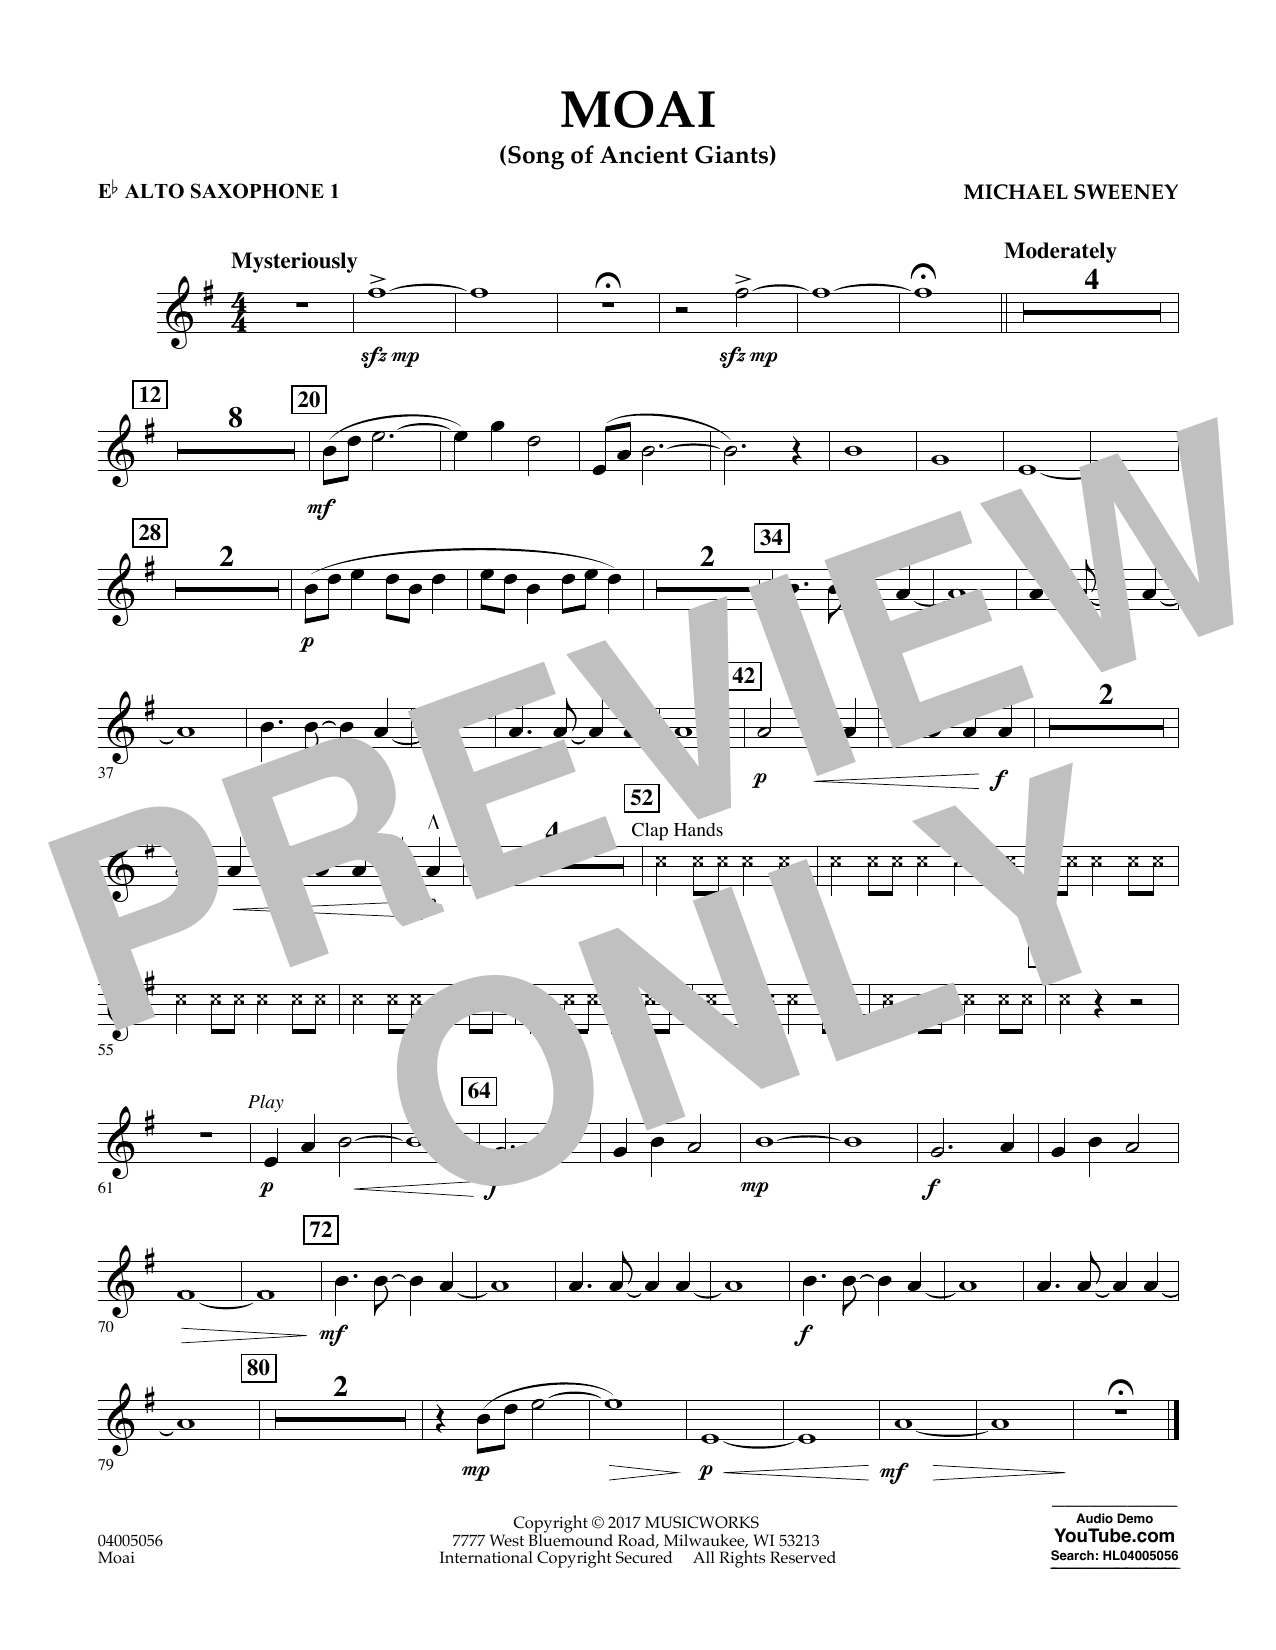 Moai (Songs of Ancient Giants) - Eb Alto Saxophone 1 by Michael Sweeney  Concert Band Digital Sheet Music